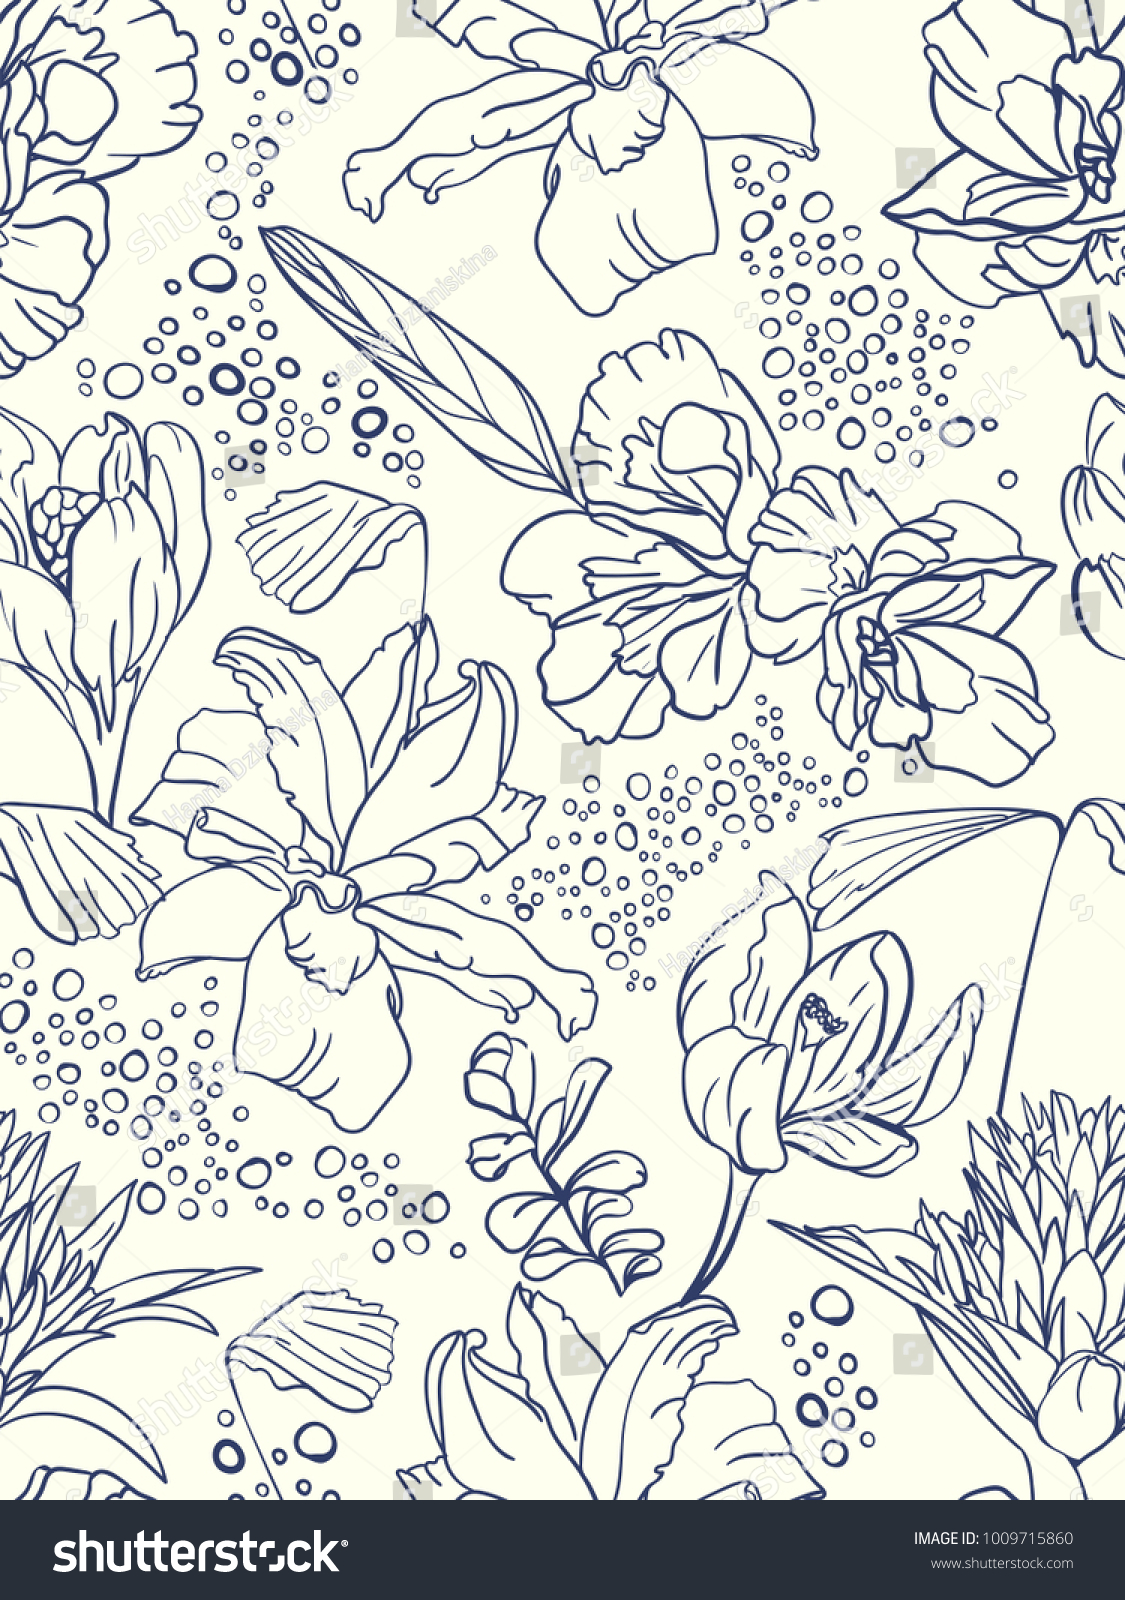 Seamless Floral Pattern With Spring Flowers Hand Drawn Vector Illustration Best Foe Cover